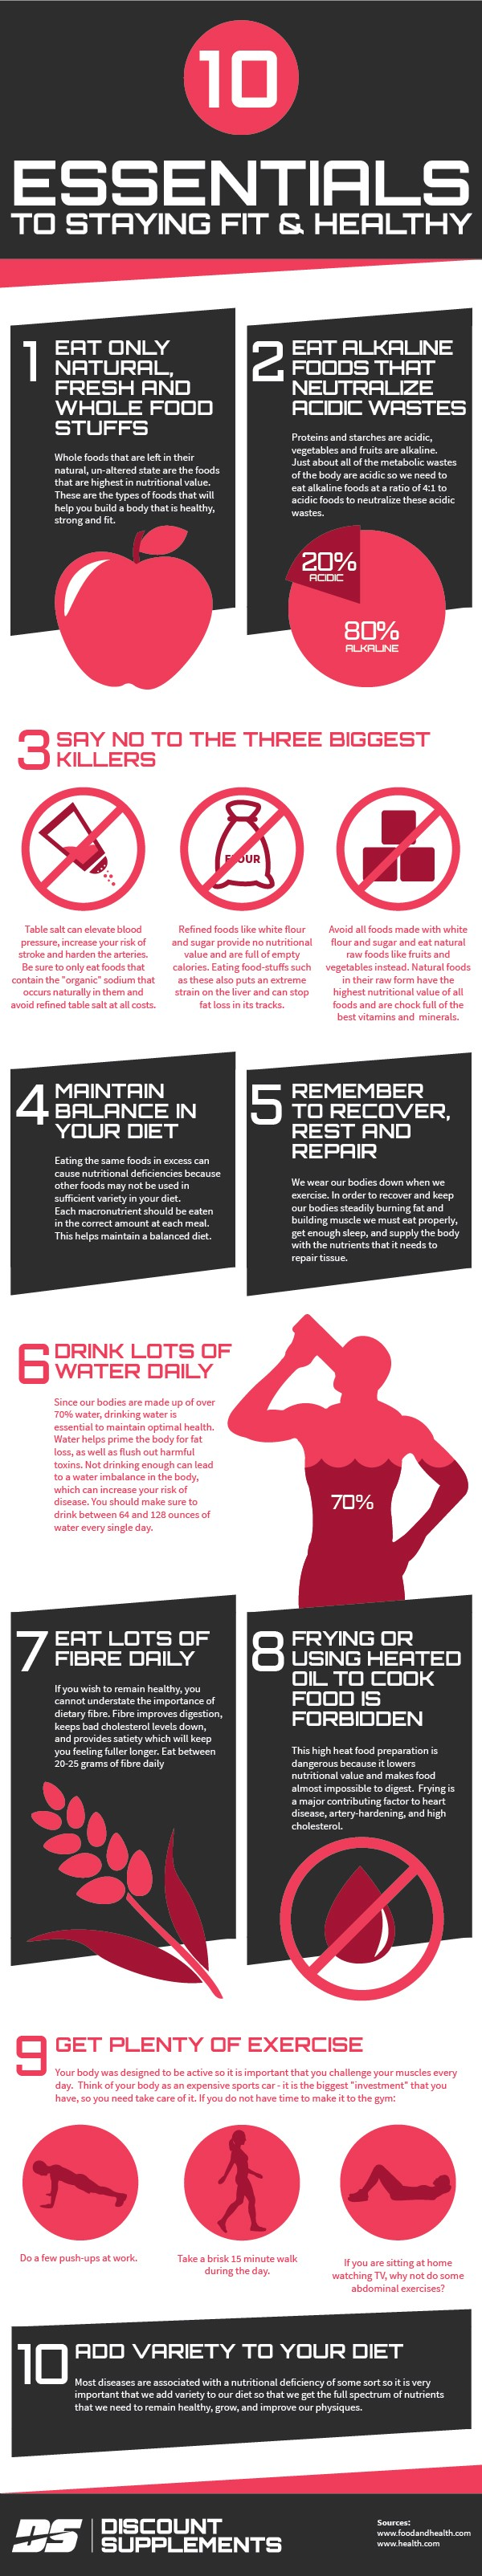 10 Essential for staying fit and healthy